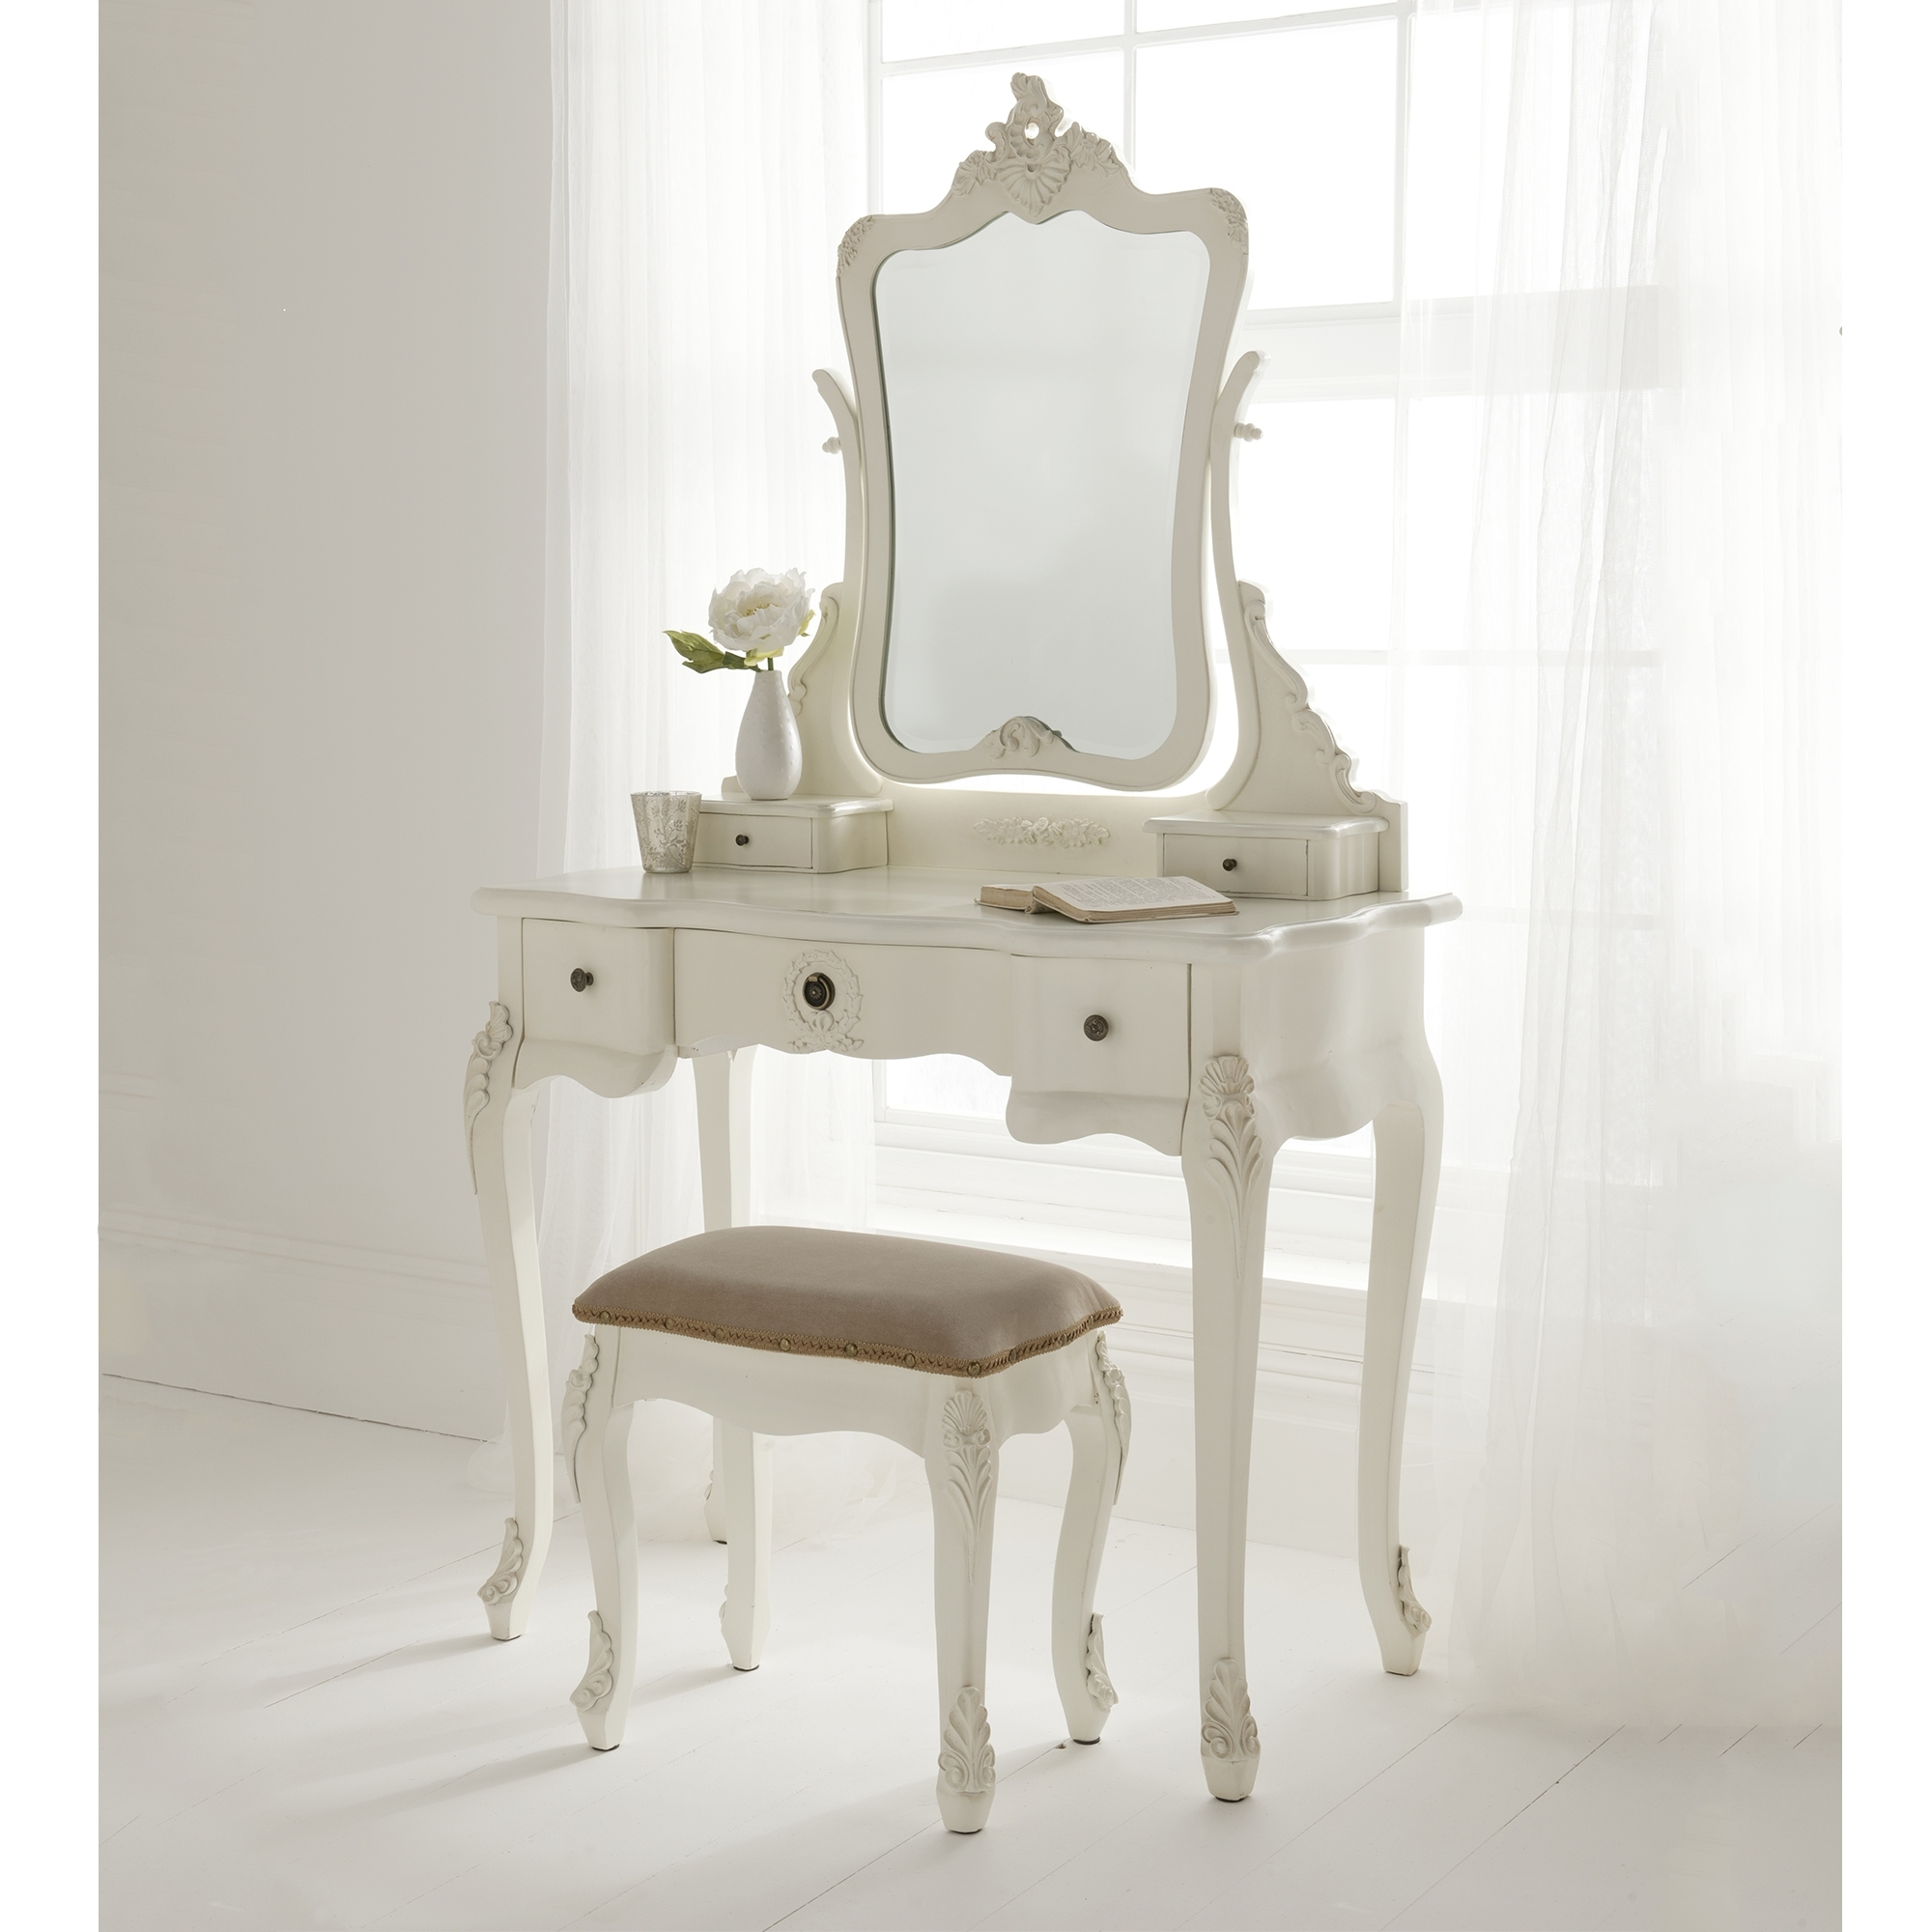 Antique French Dressing Table Shabby Chic Furniture Online